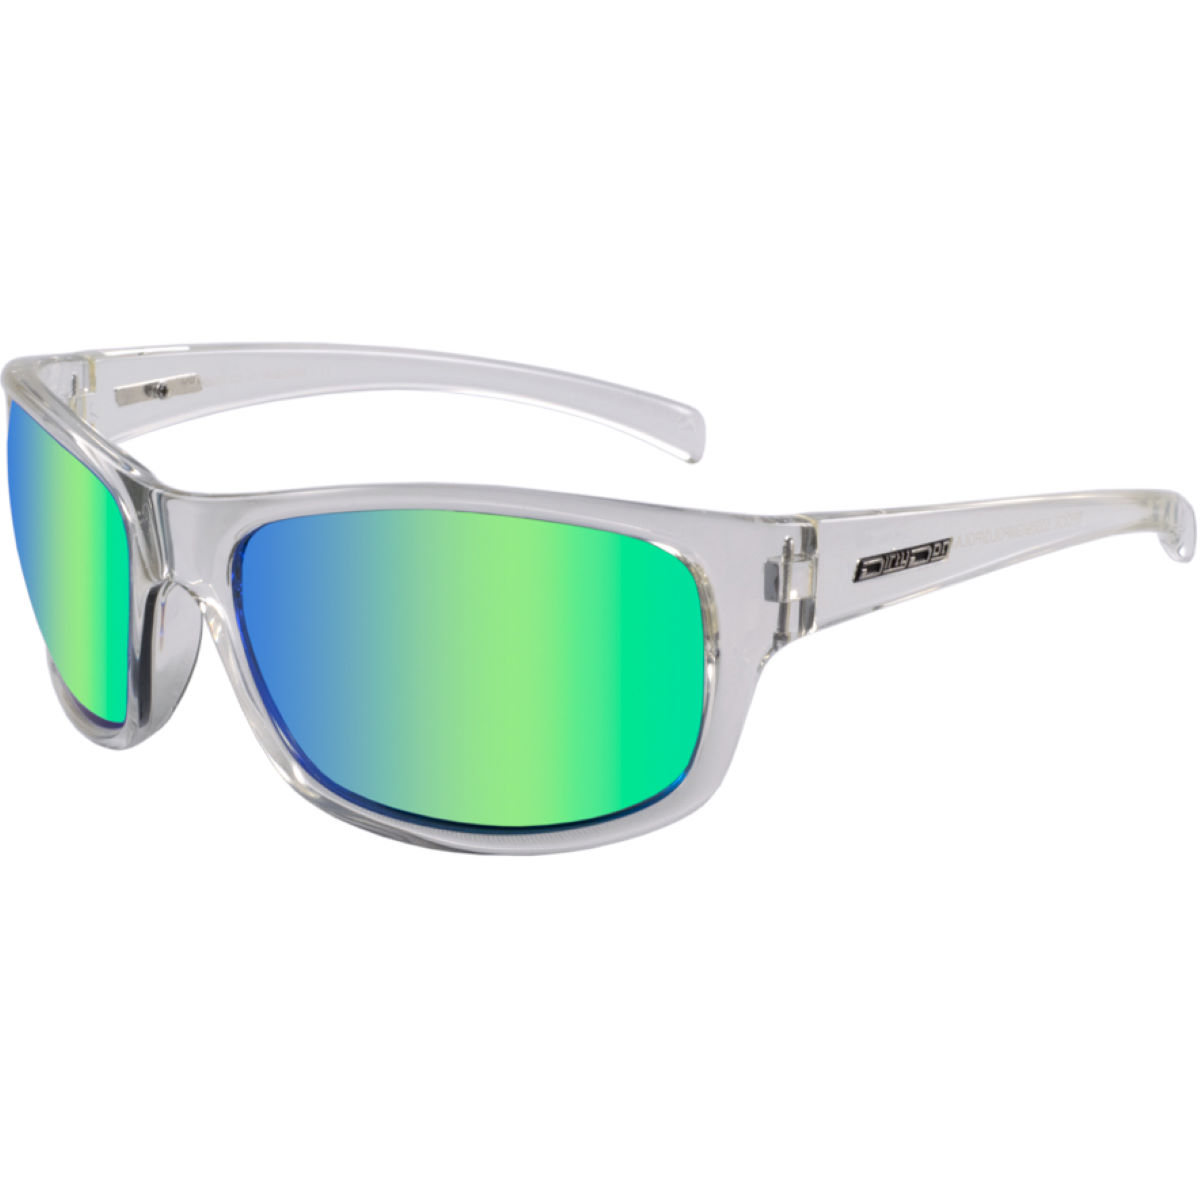 Dirty Dog Shock Polarised Sunglasses - Gafas de sol